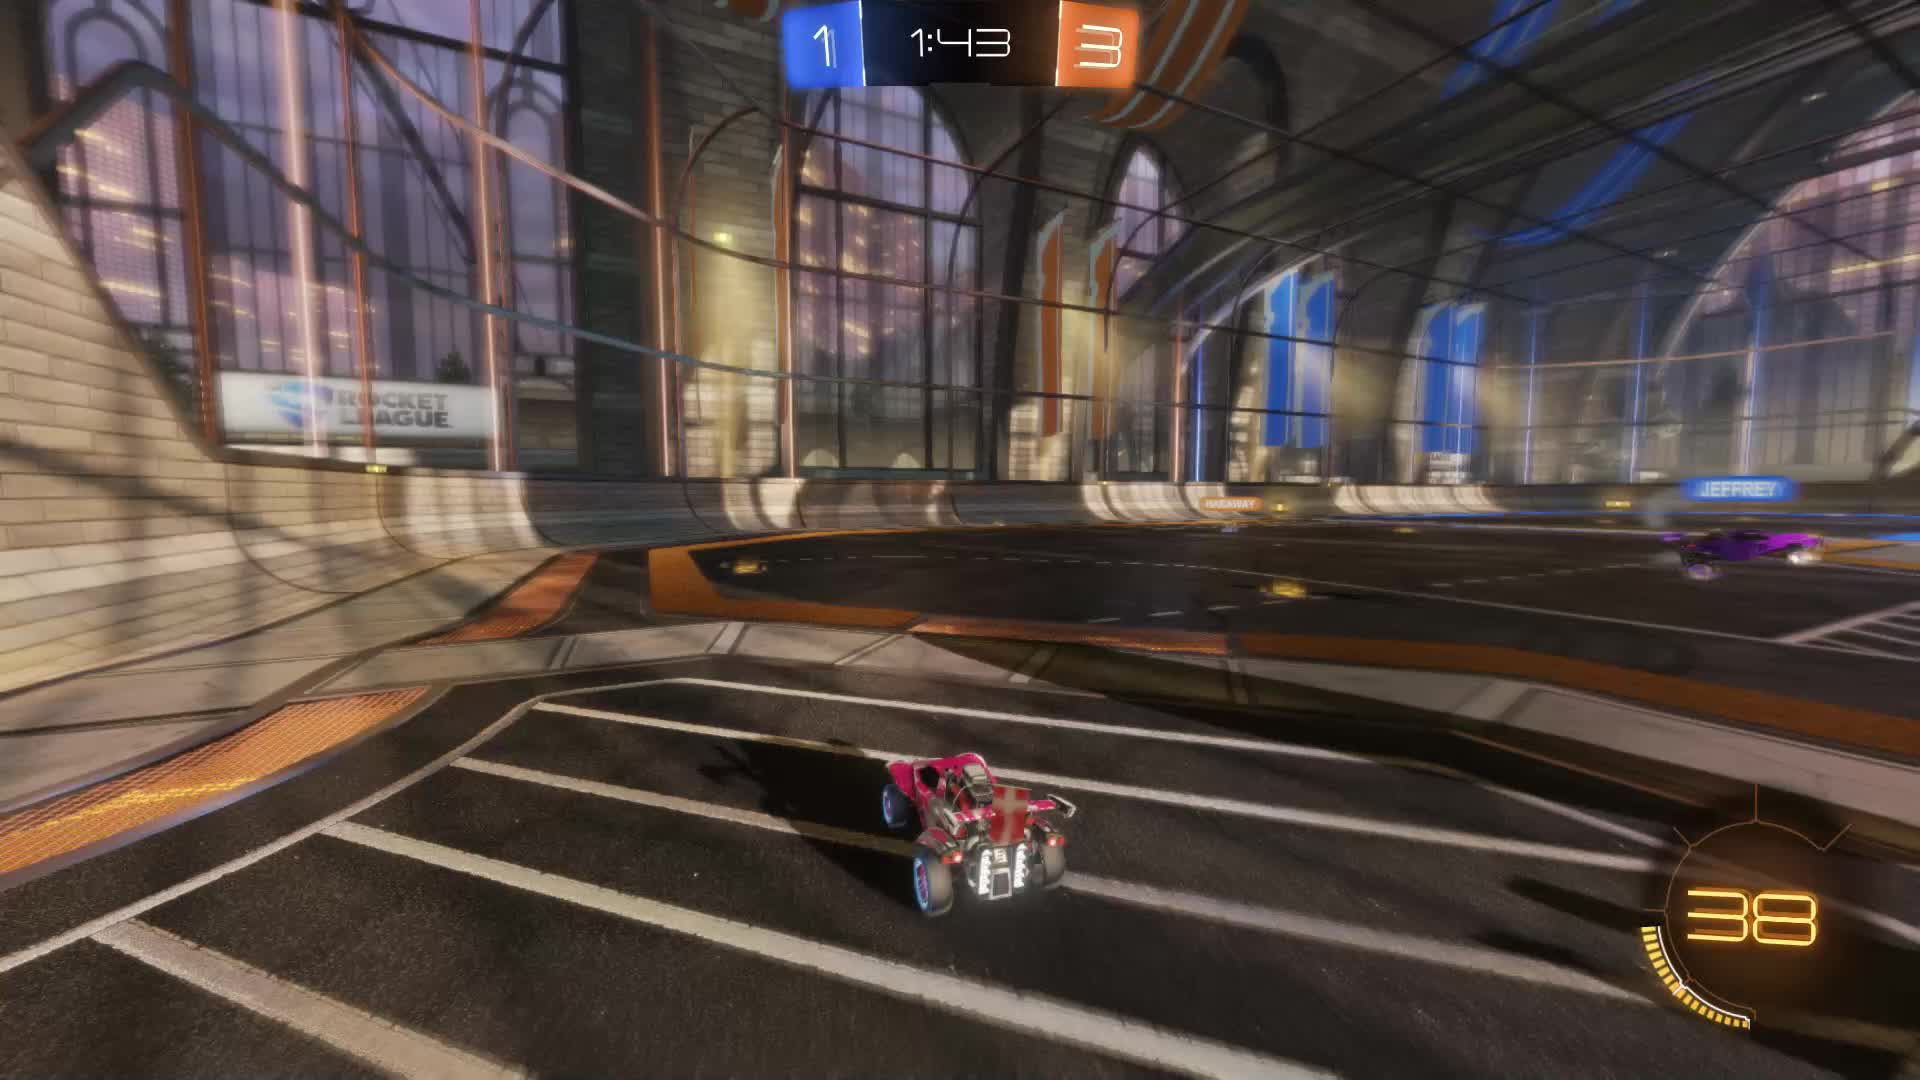 Gif Your Game, GifYourGame, Goal, Rocket League, RocketLeague, Snakes, Goal 5: Snakes GIFs